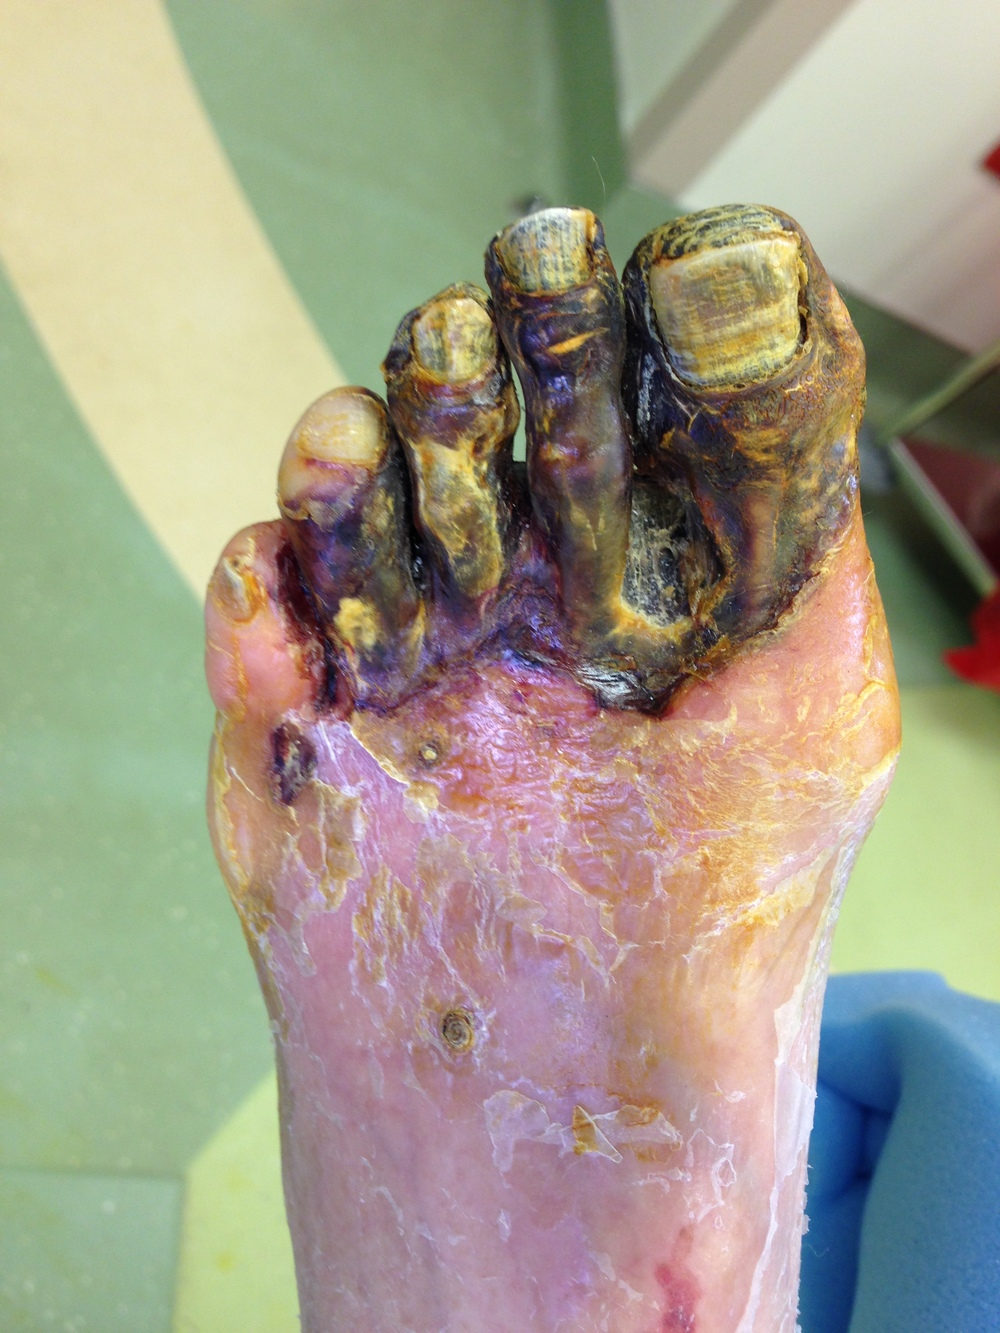 A patient with advanced peripheral vascular disease